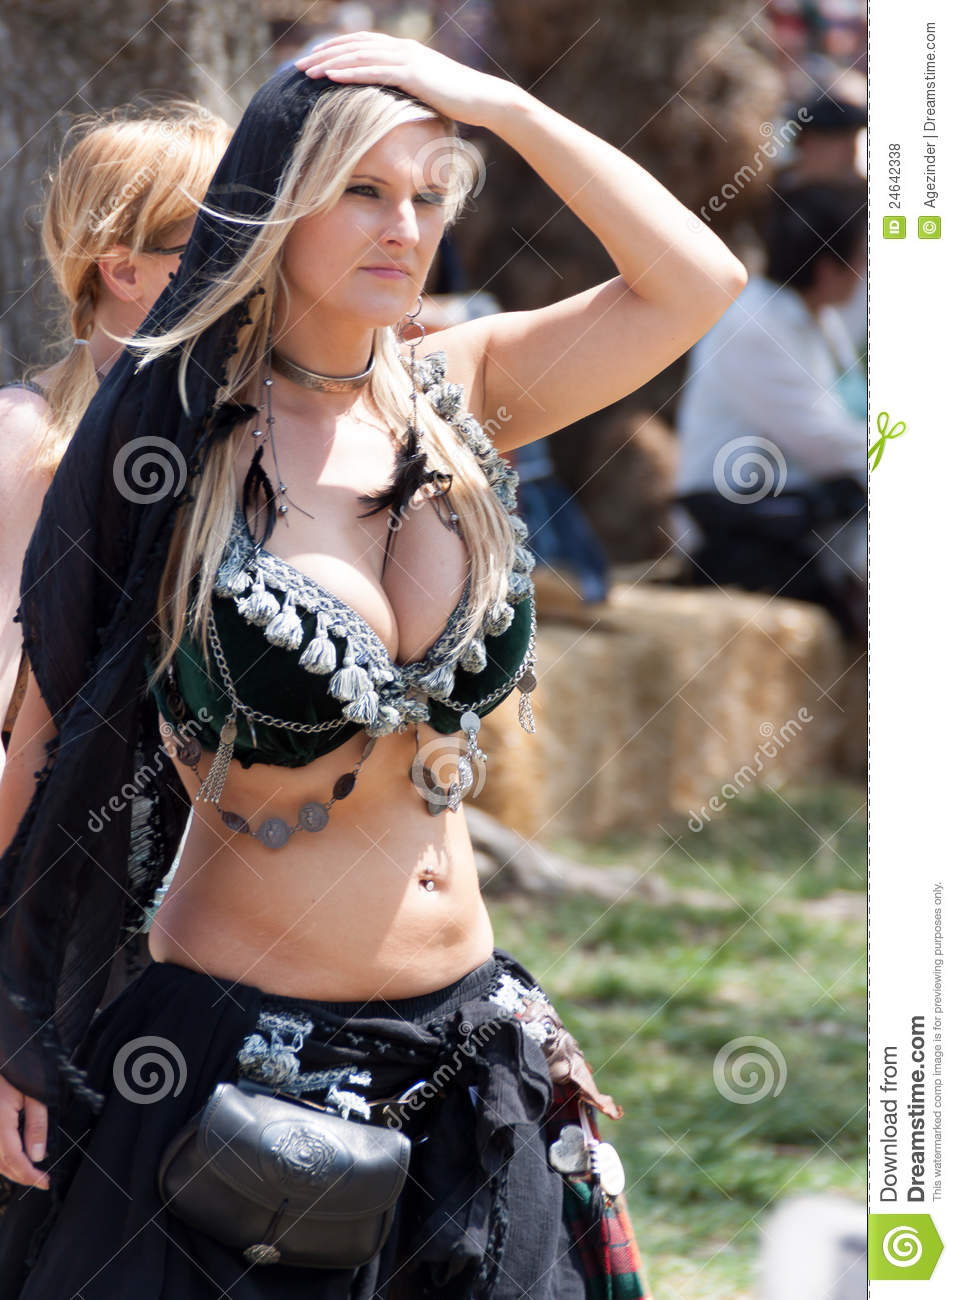 What kind busty festival pic renaissance